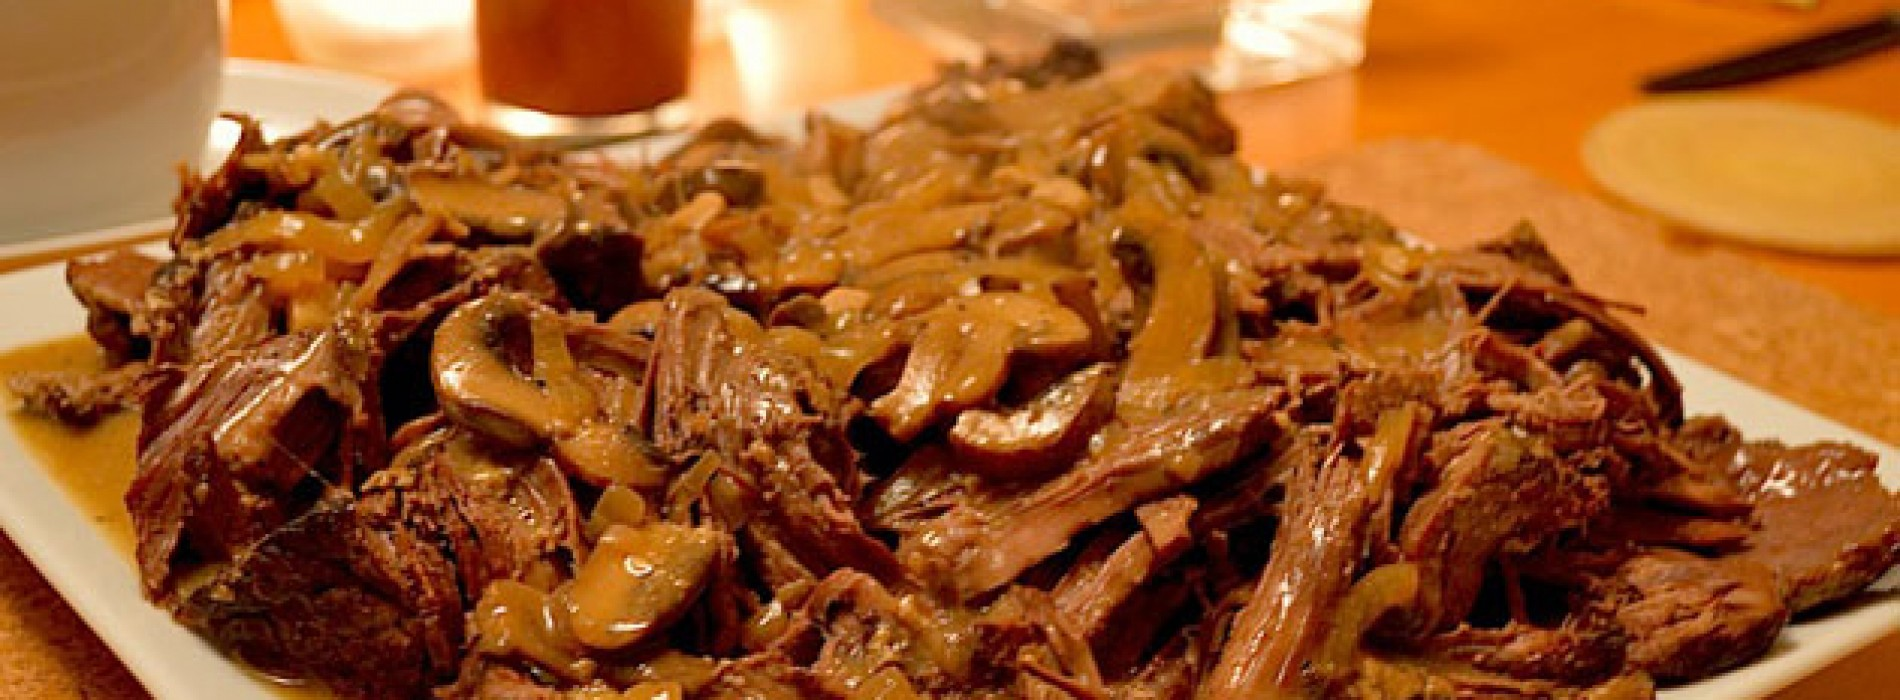 Lisa's Letters Home: Beef With Mushroom Sauce